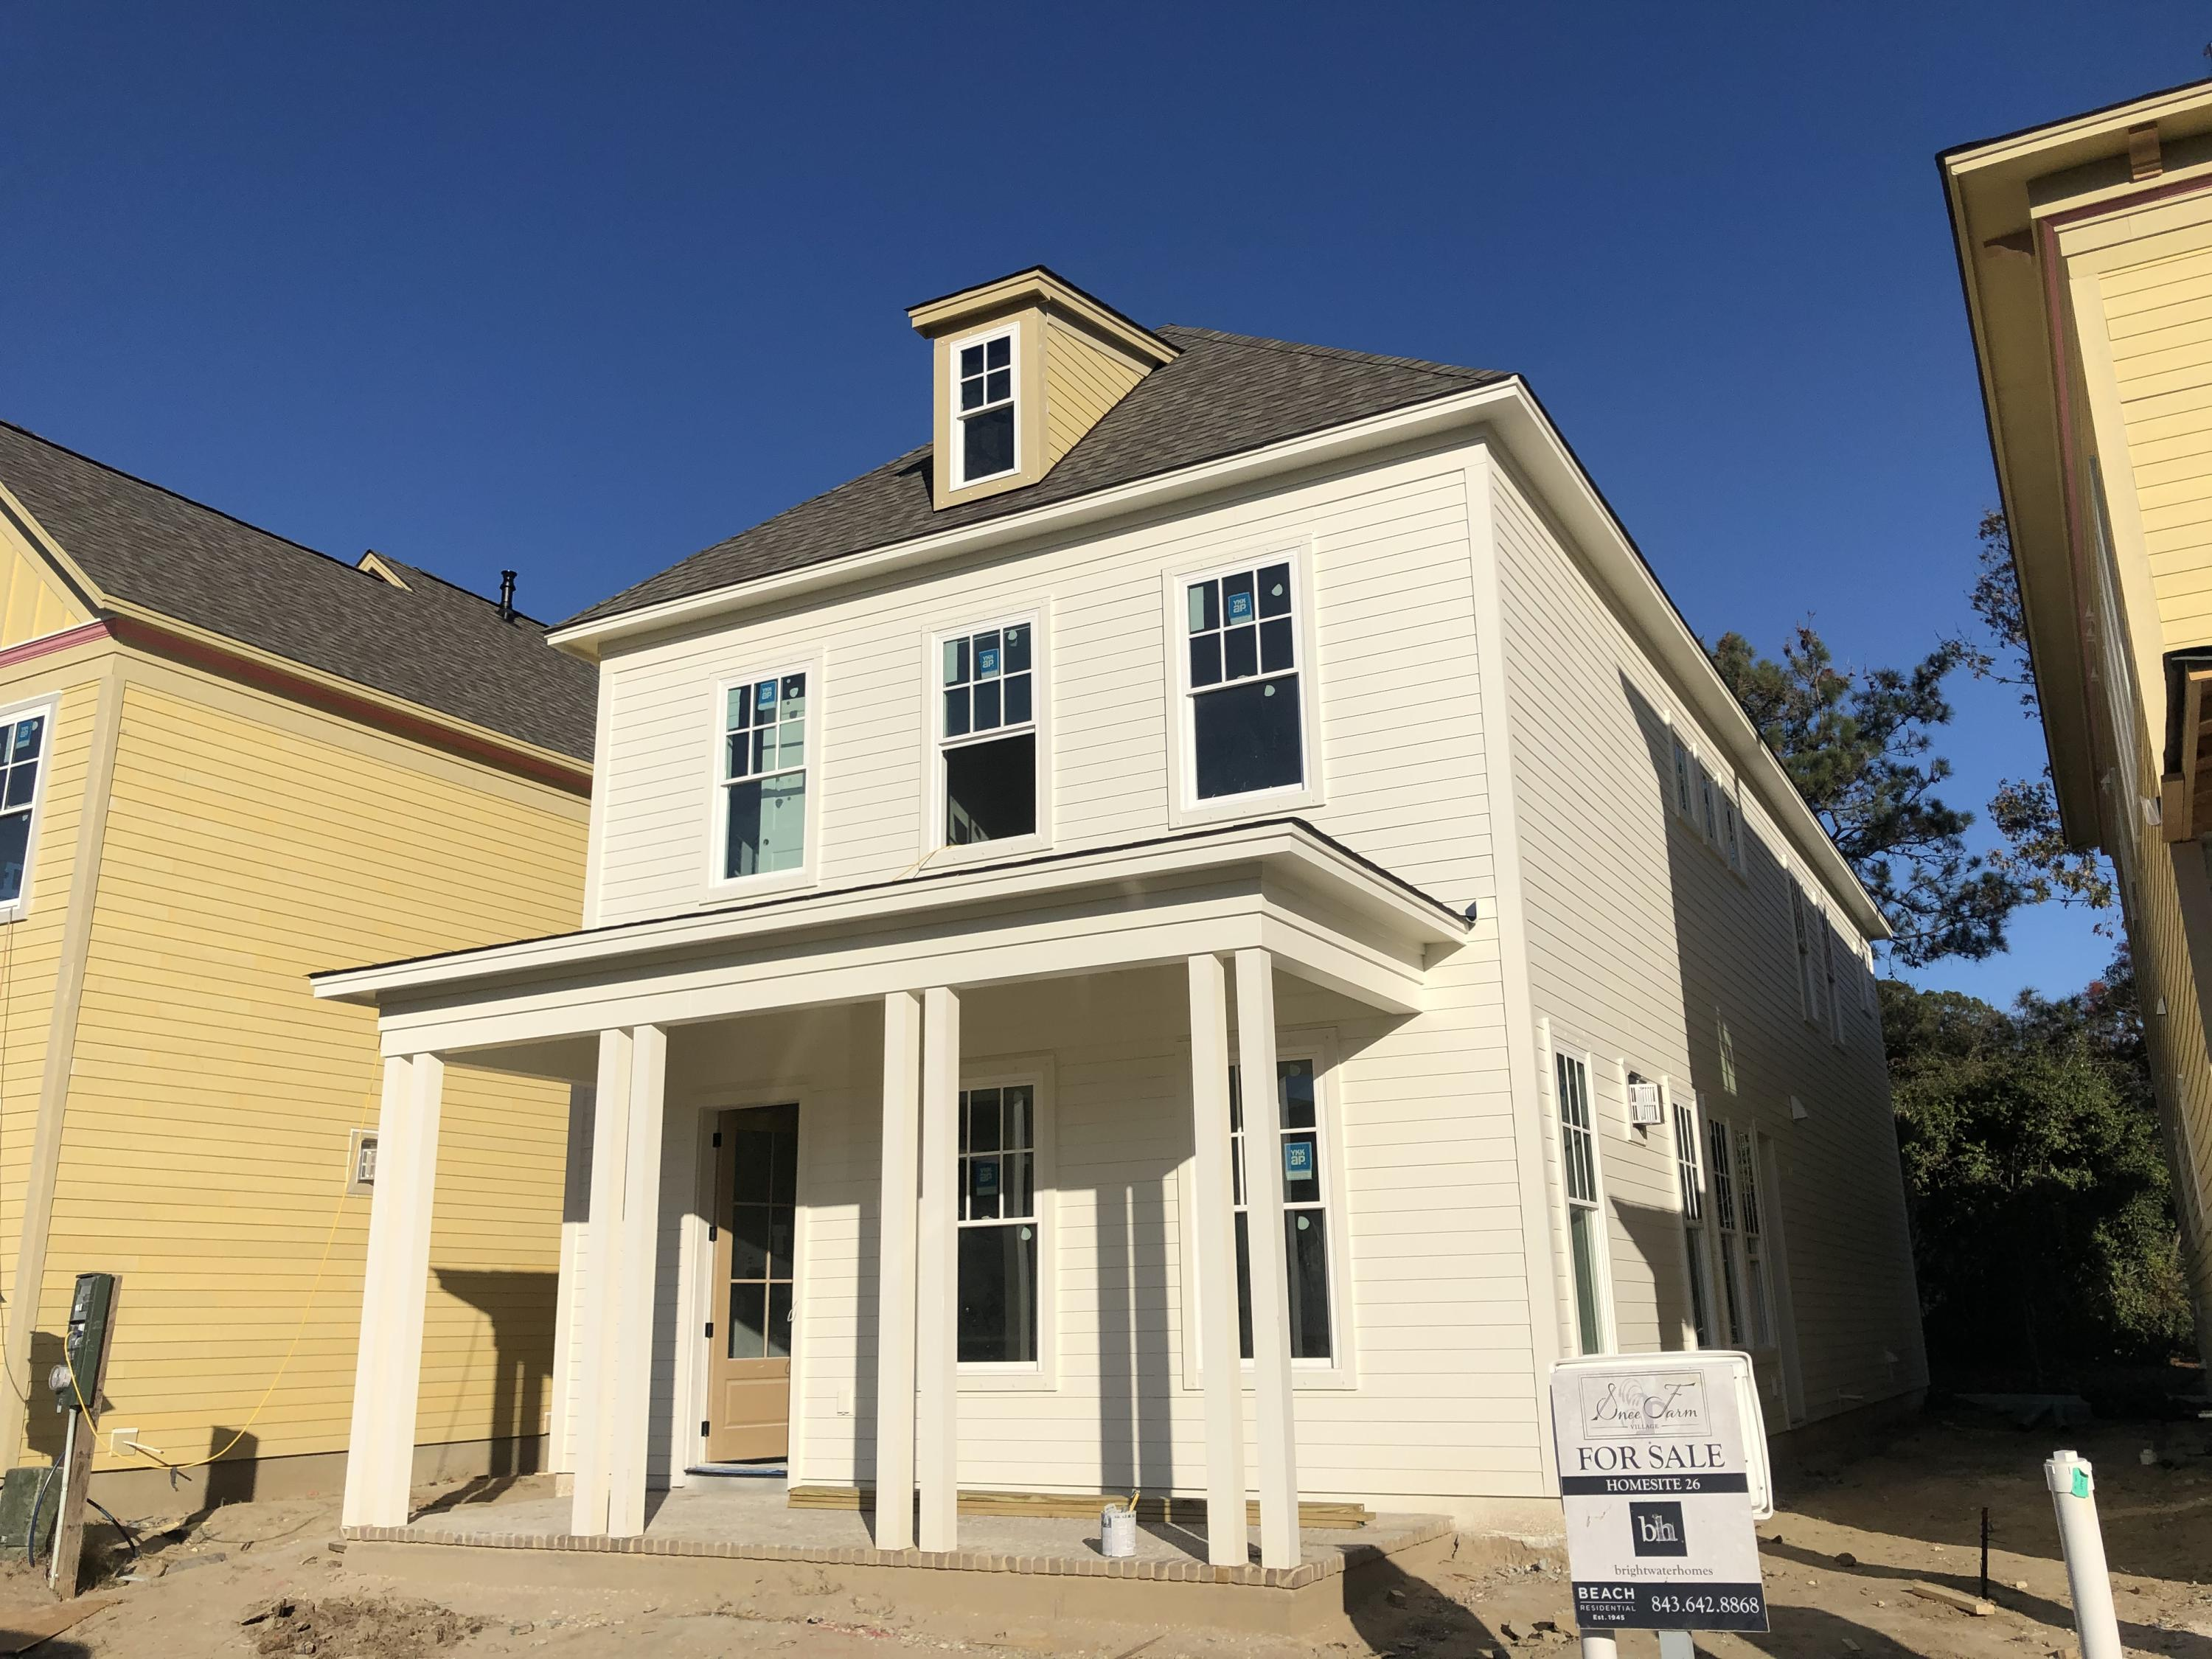 Snee Farm Homes For Sale - 1183 Welcome Drive, Mount Pleasant, SC - 2